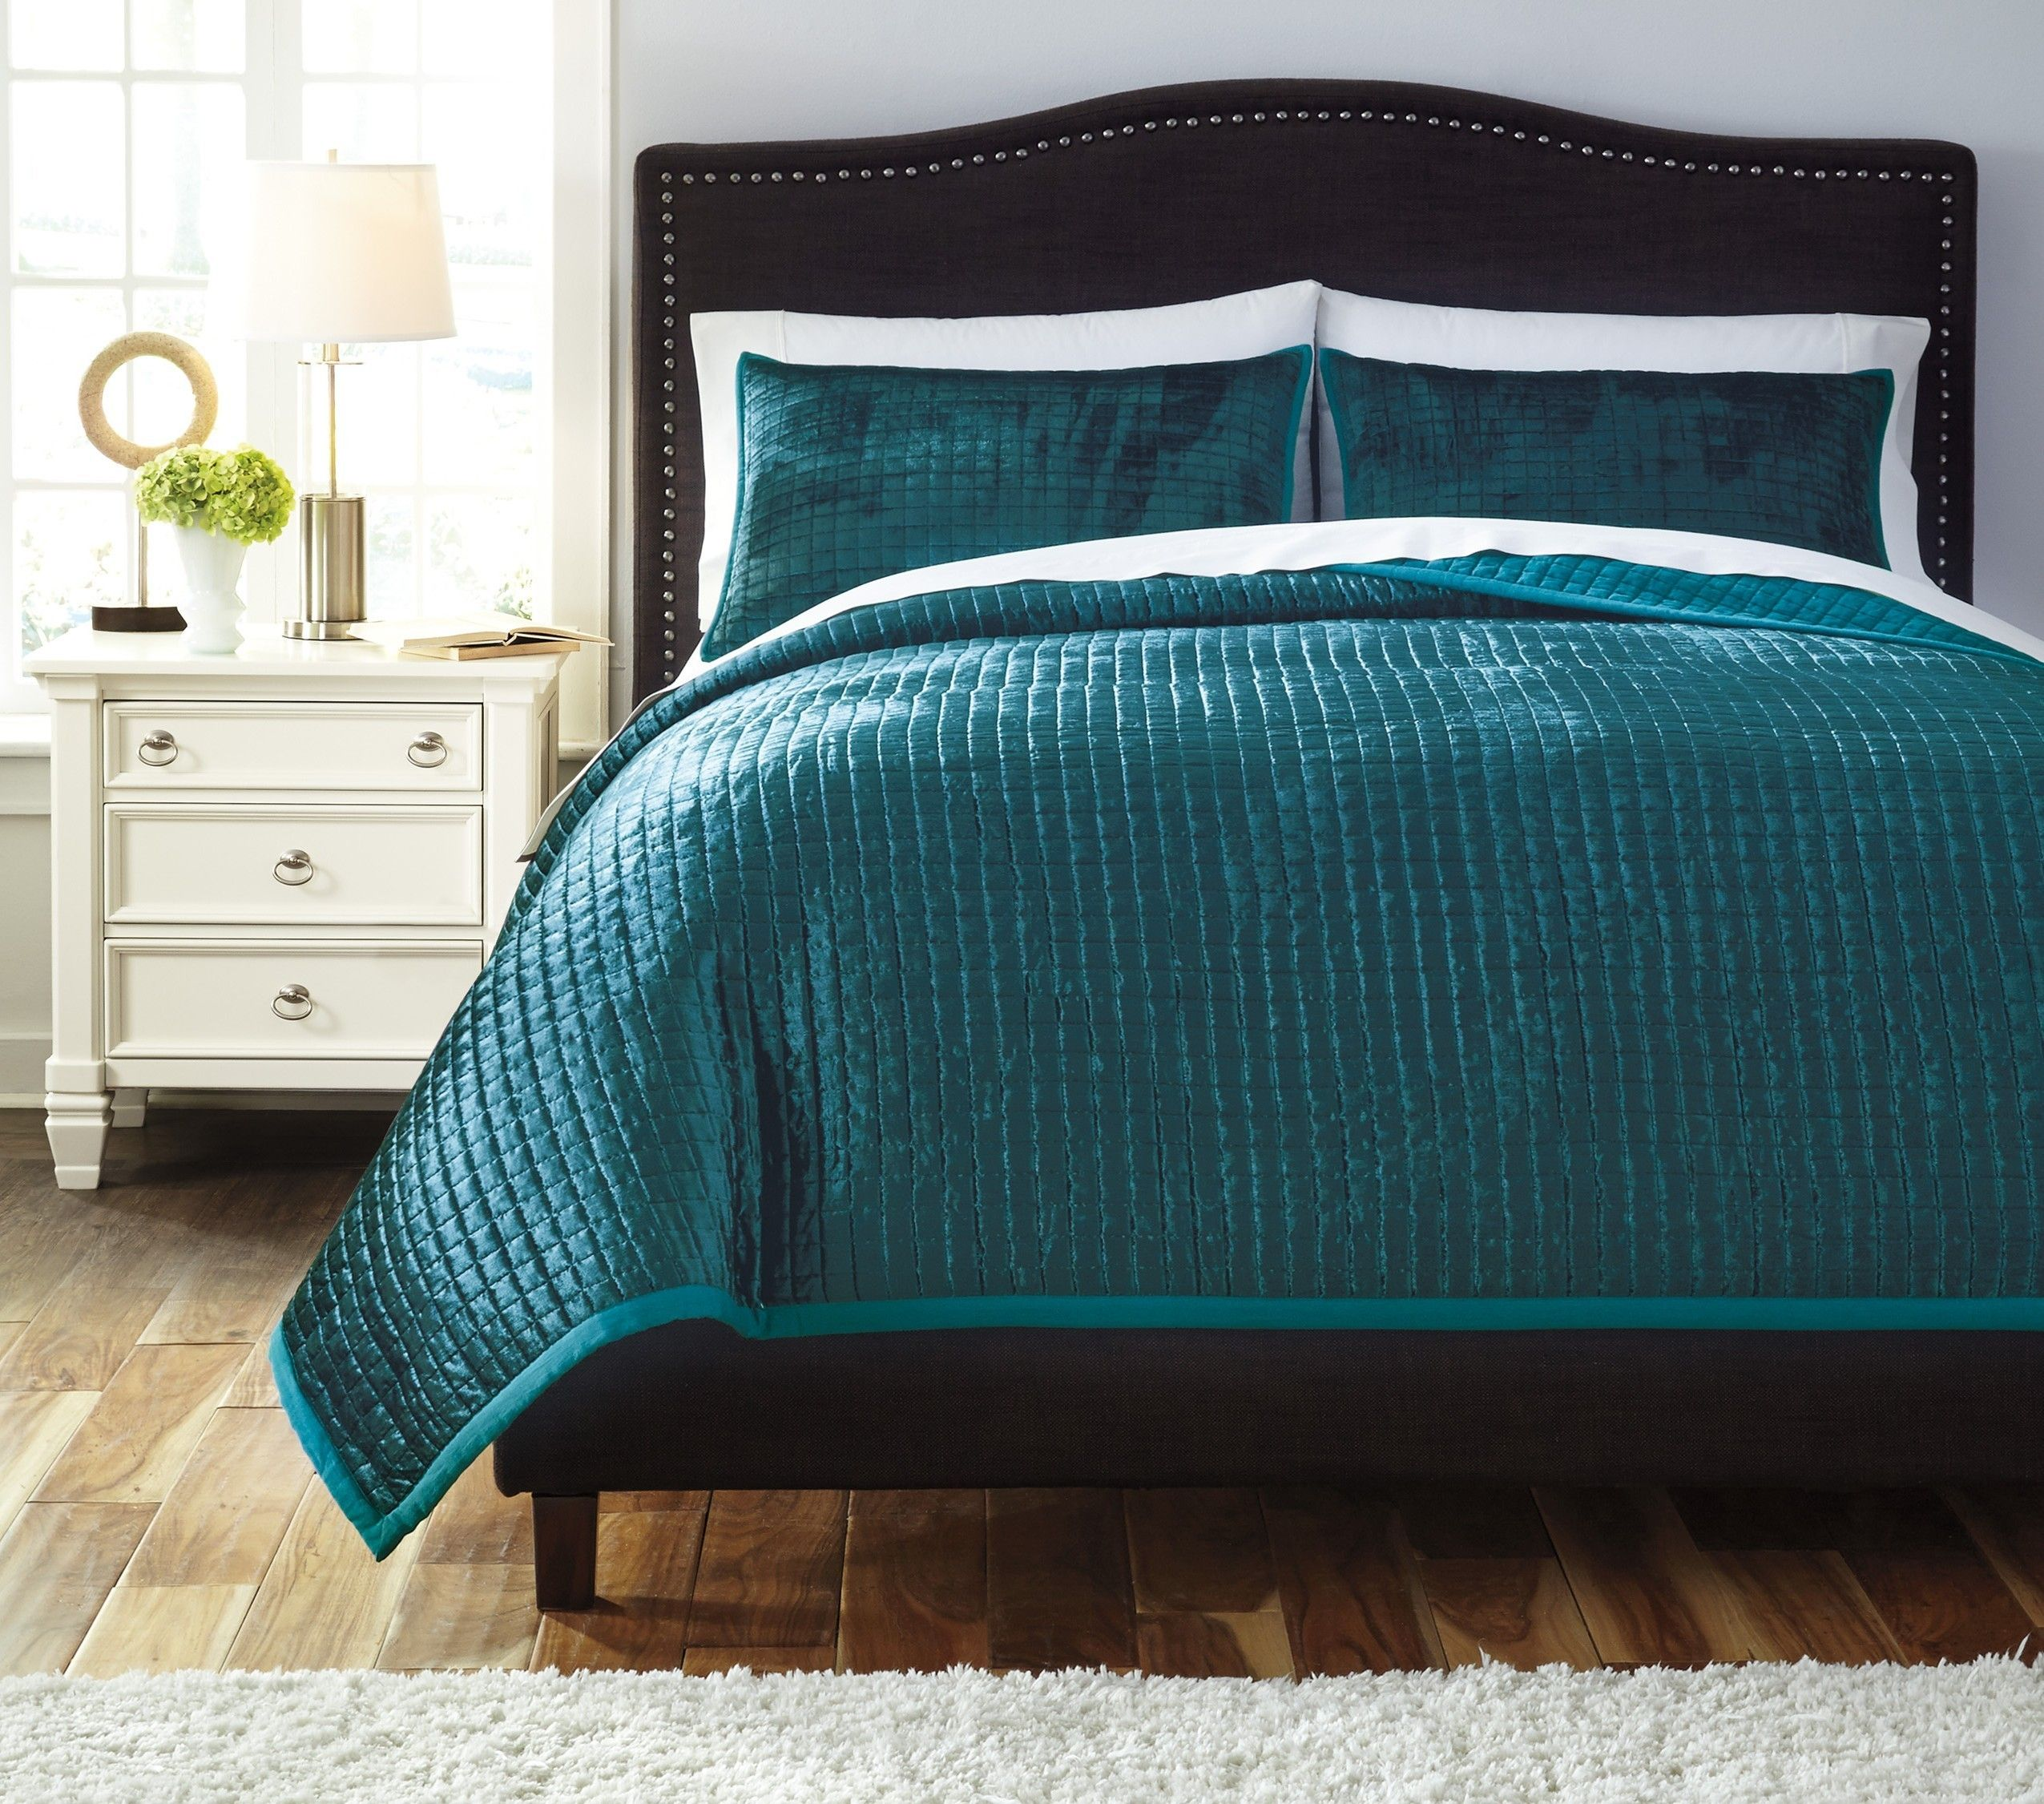 Ashley Furniture Stitched Peacock Quilt Set Realistic Decor